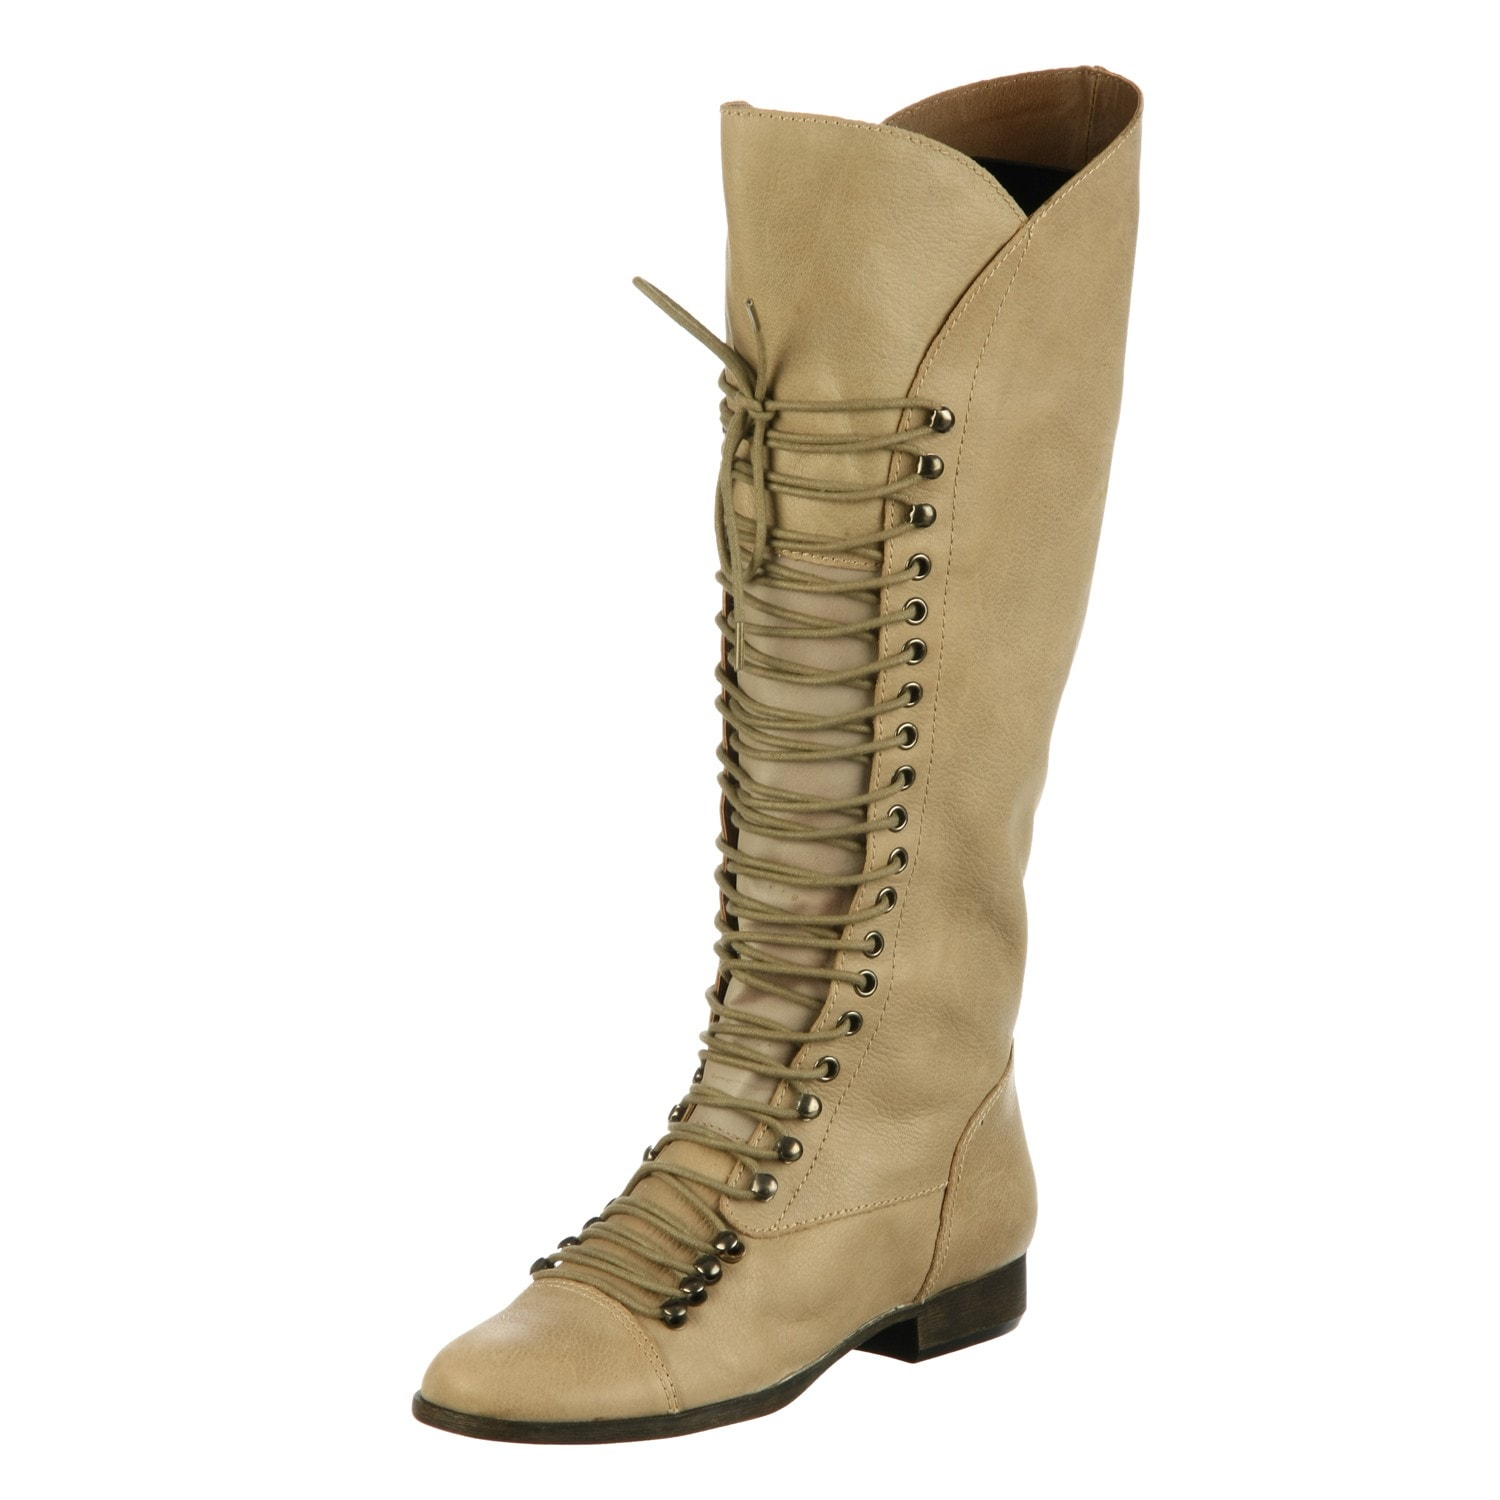 eea8ea4a17671 Shop Steve Madden Women's 'P-Lorra' Taupe Knee-high Riding Boots - Free  Shipping Today - Overstock - 6027976